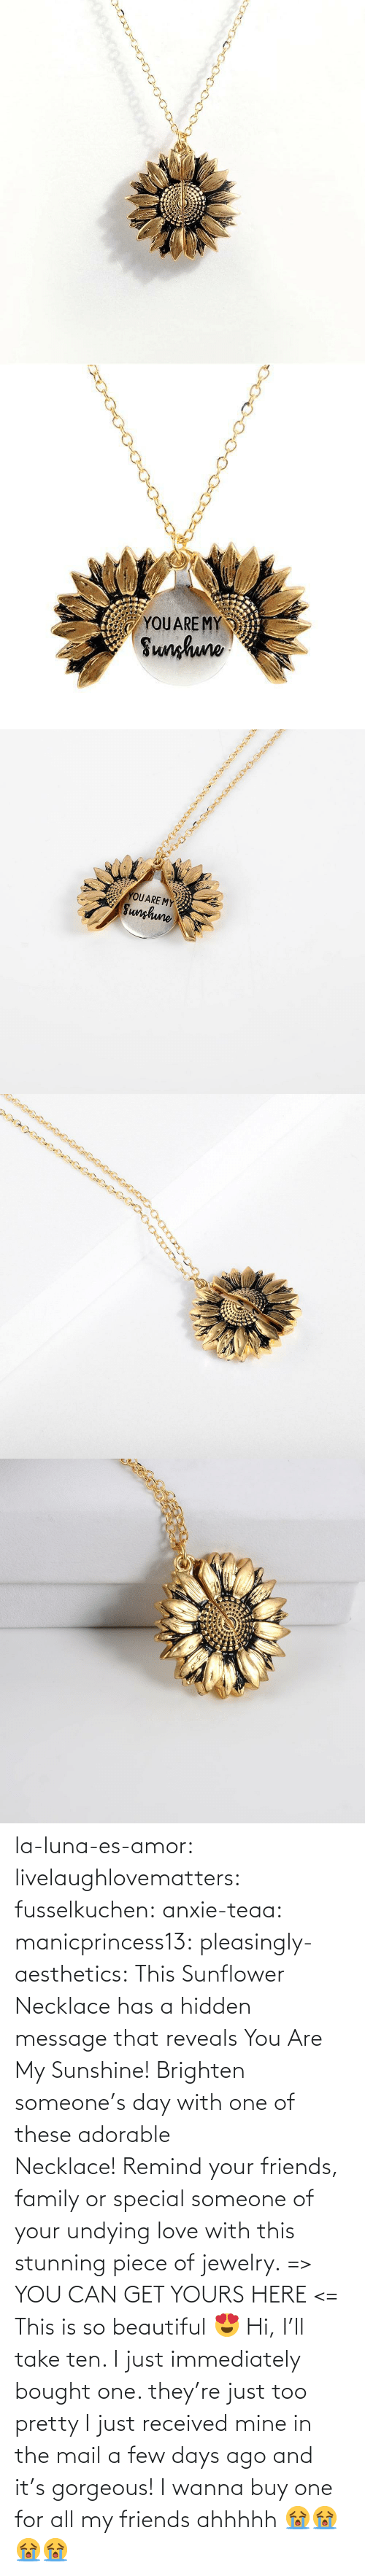 Can Get: YOUARE MY  Sunhuno   YOUARE MY  Sunghune la-luna-es-amor: livelaughlovematters:  fusselkuchen:  anxie-teaa:   manicprincess13:   pleasingly-aesthetics:  This Sunflower Necklace has a hidden message that reveals You Are My Sunshine! Brighten someone's day with one of these adorable Necklace! Remind your friends, family or special someone of your undying love with this stunning piece of jewelry. => YOU CAN GET YOURS HERE <=   This is so beautiful 😍    Hi, I'll take ten.    I just immediately bought one. they're just too pretty   I just received mine in the mail a few days ago and it's gorgeous!   I wanna buy one for all my friends ahhhhh 😭😭😭😭